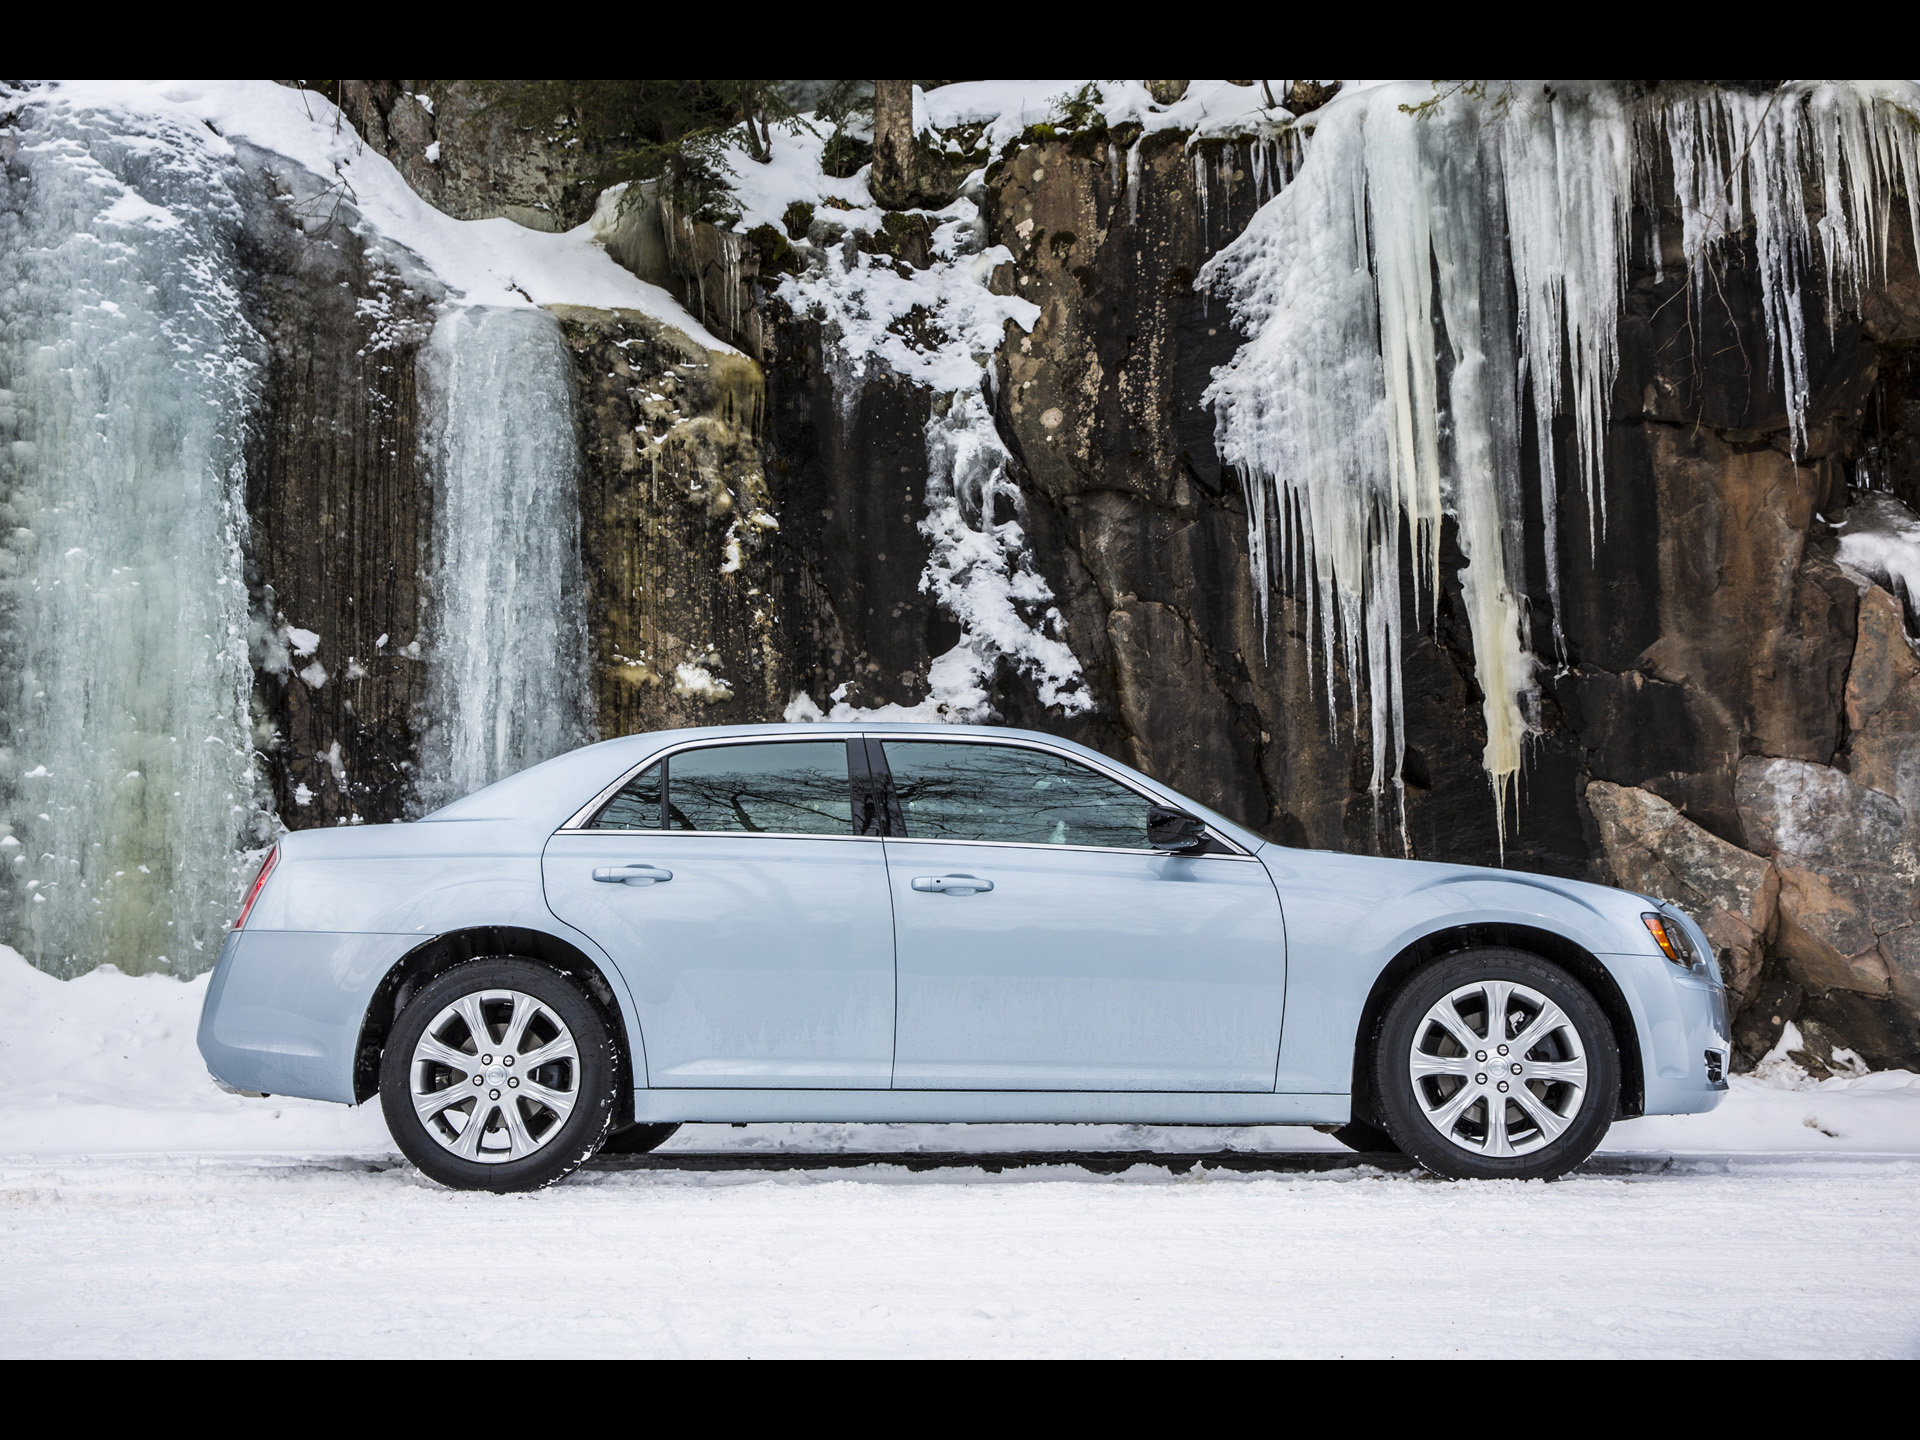 click to free download the wallpaper--Super Car Images of Chrysler 300, Freezing Waterfall, a Blue Car by the Side, Great Scene 1920X1440 free wallpaper download